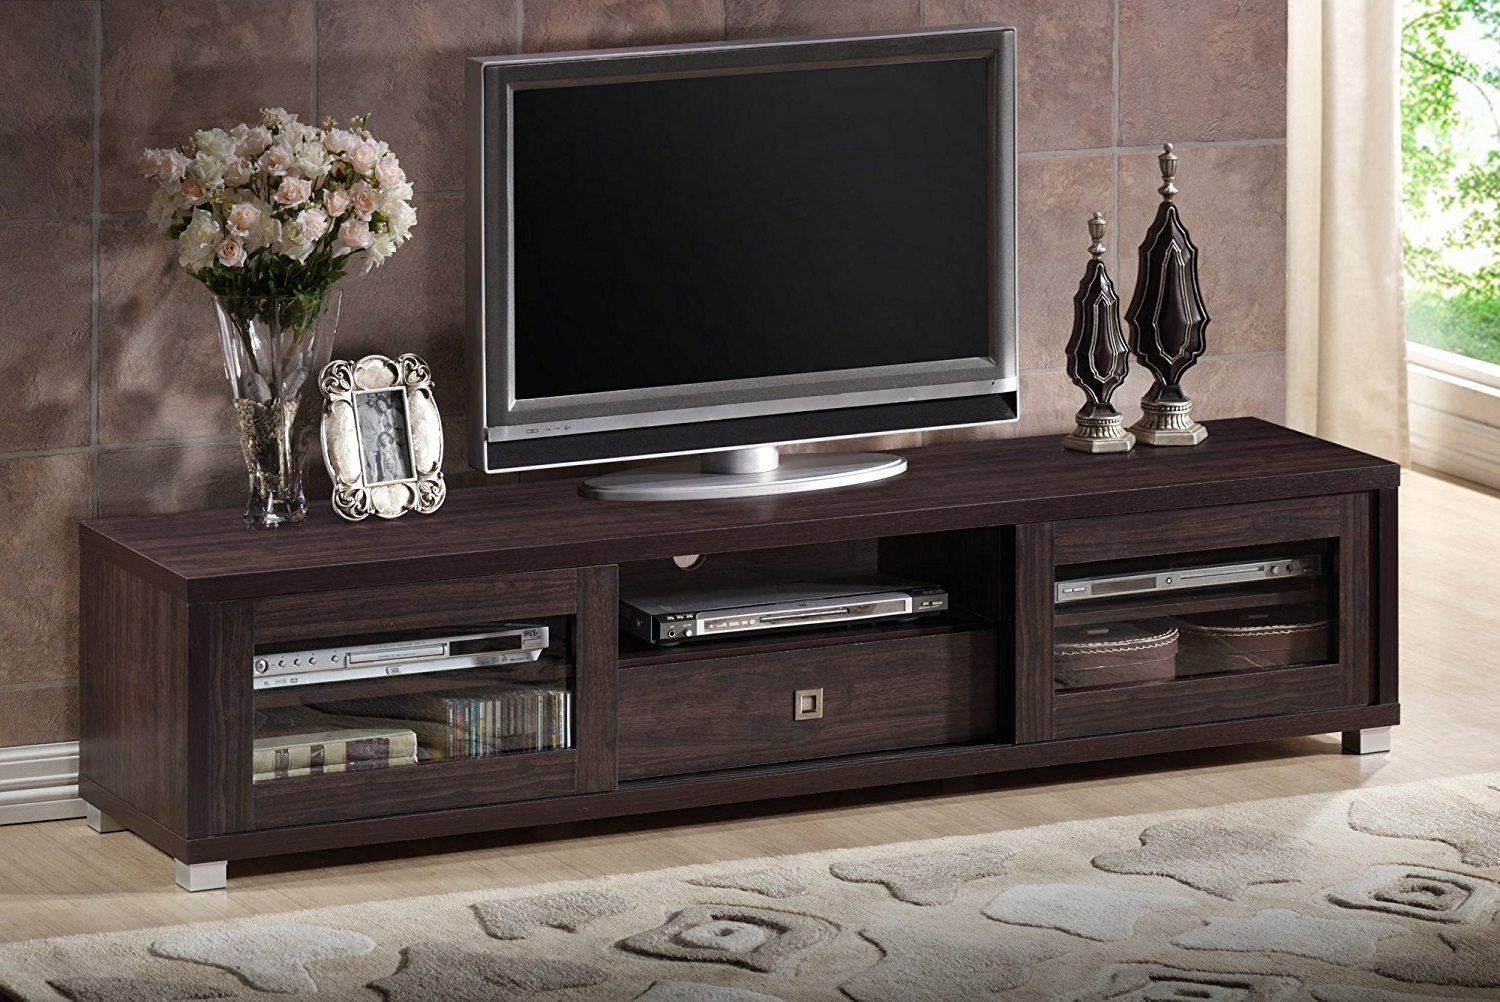 Coolest Dark Wood Tv Stand Amazon: Wholesale Interiors – Furnish Intended For Most Popular Dark Wood Tv Stands (View 3 of 20)